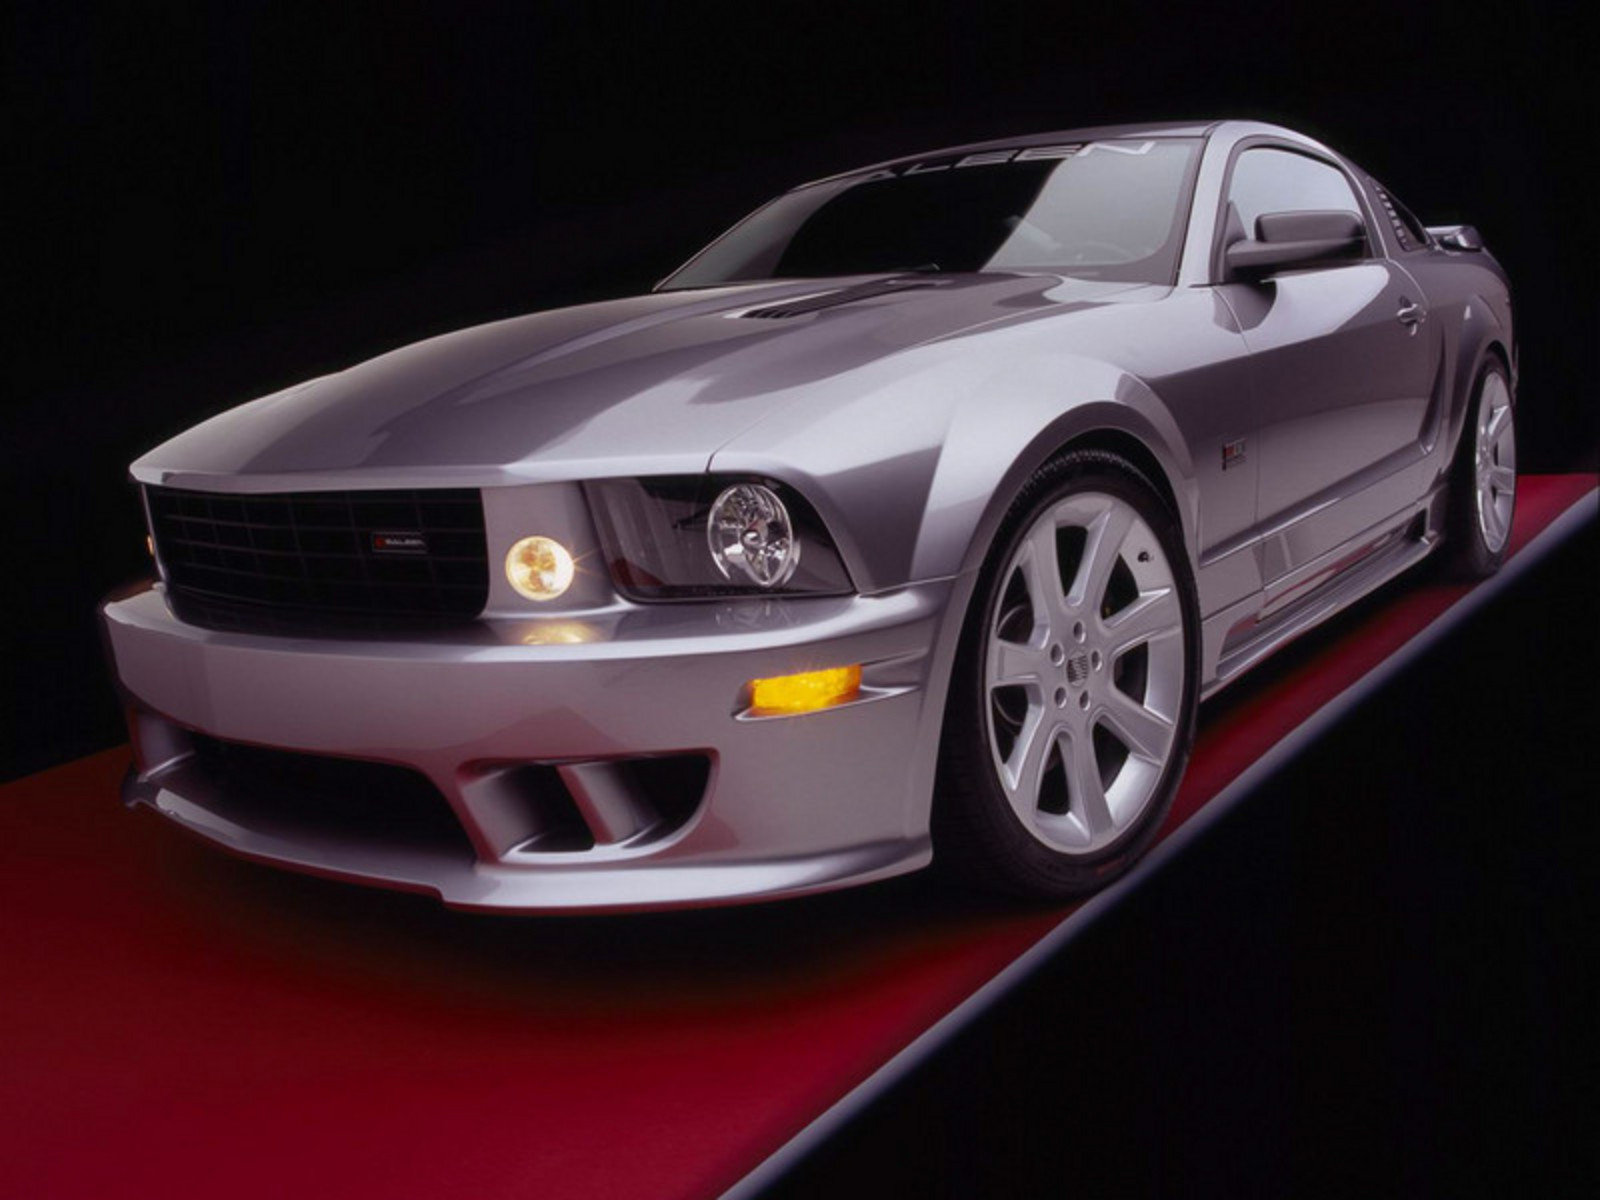 2005 saleen s281 mustang picture 49509 car review. Black Bedroom Furniture Sets. Home Design Ideas